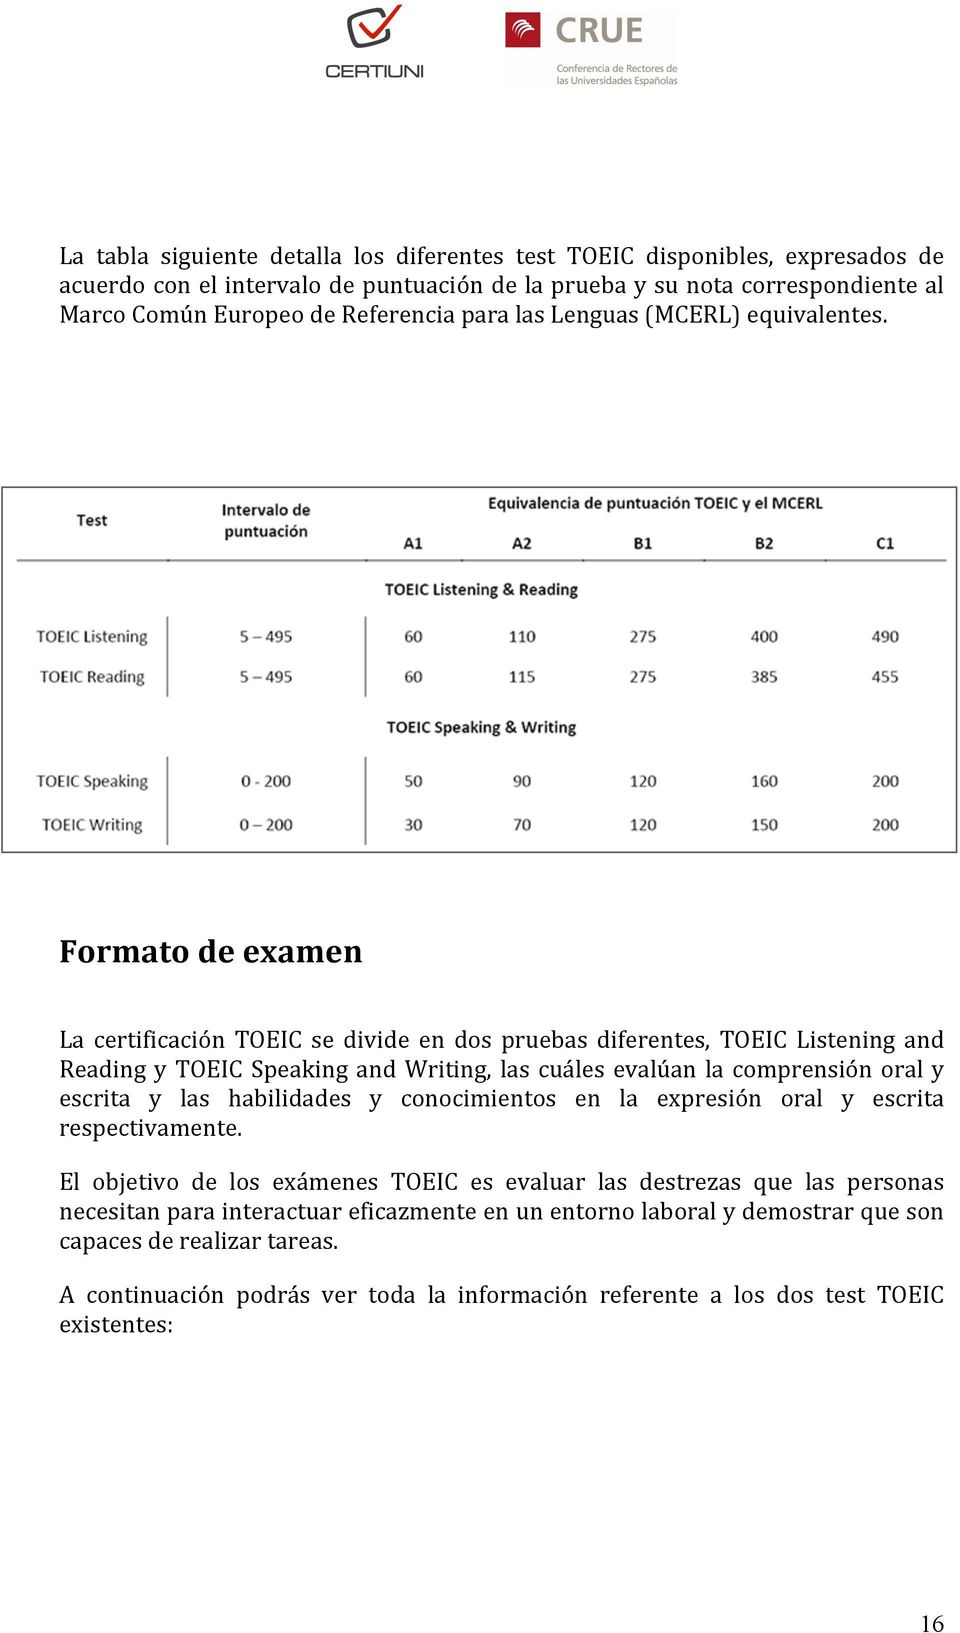 Formato de examen La certificación TOEIC se divide en dos pruebas diferentes, TOEIC Listening and Reading y TOEIC Speaking and Writing, las cuáles evalúan la comprensión oral y escrita y las